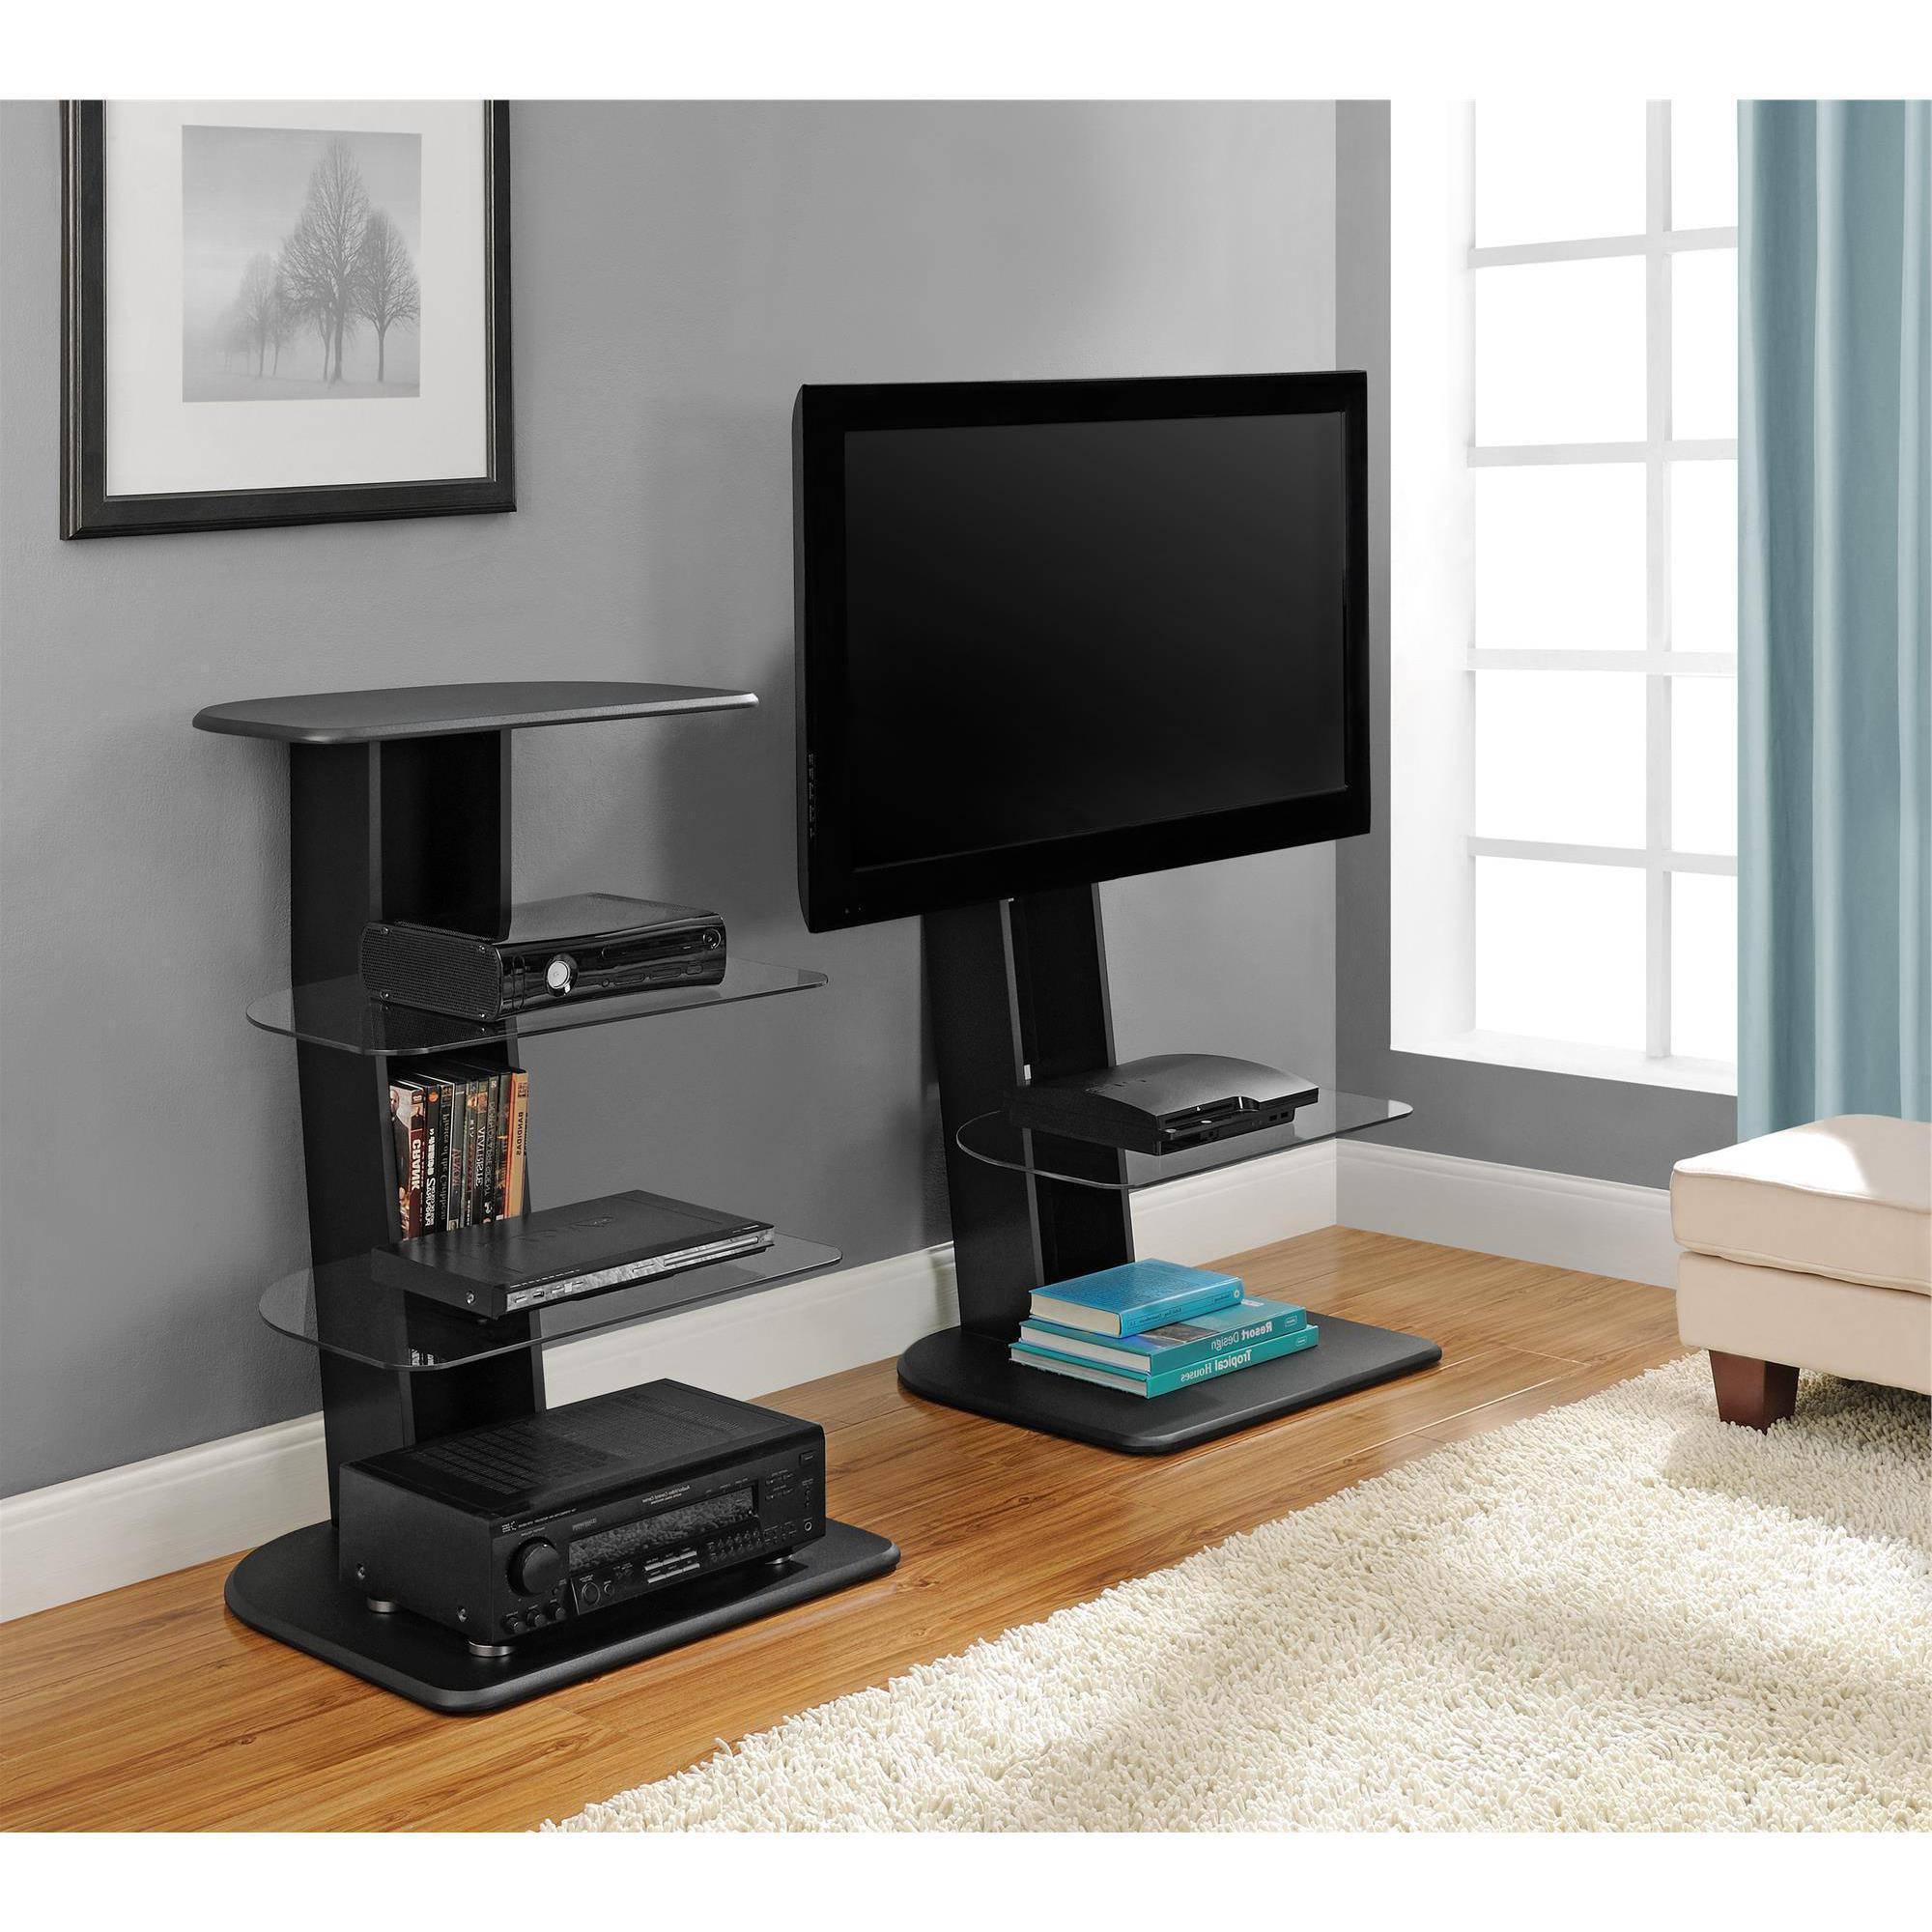 Newest 40 Inch Tv Height With Stand Corner Fireplace Doors – Buyouapp Throughout 40 Inch Corner Tv Stands (View 6 of 20)